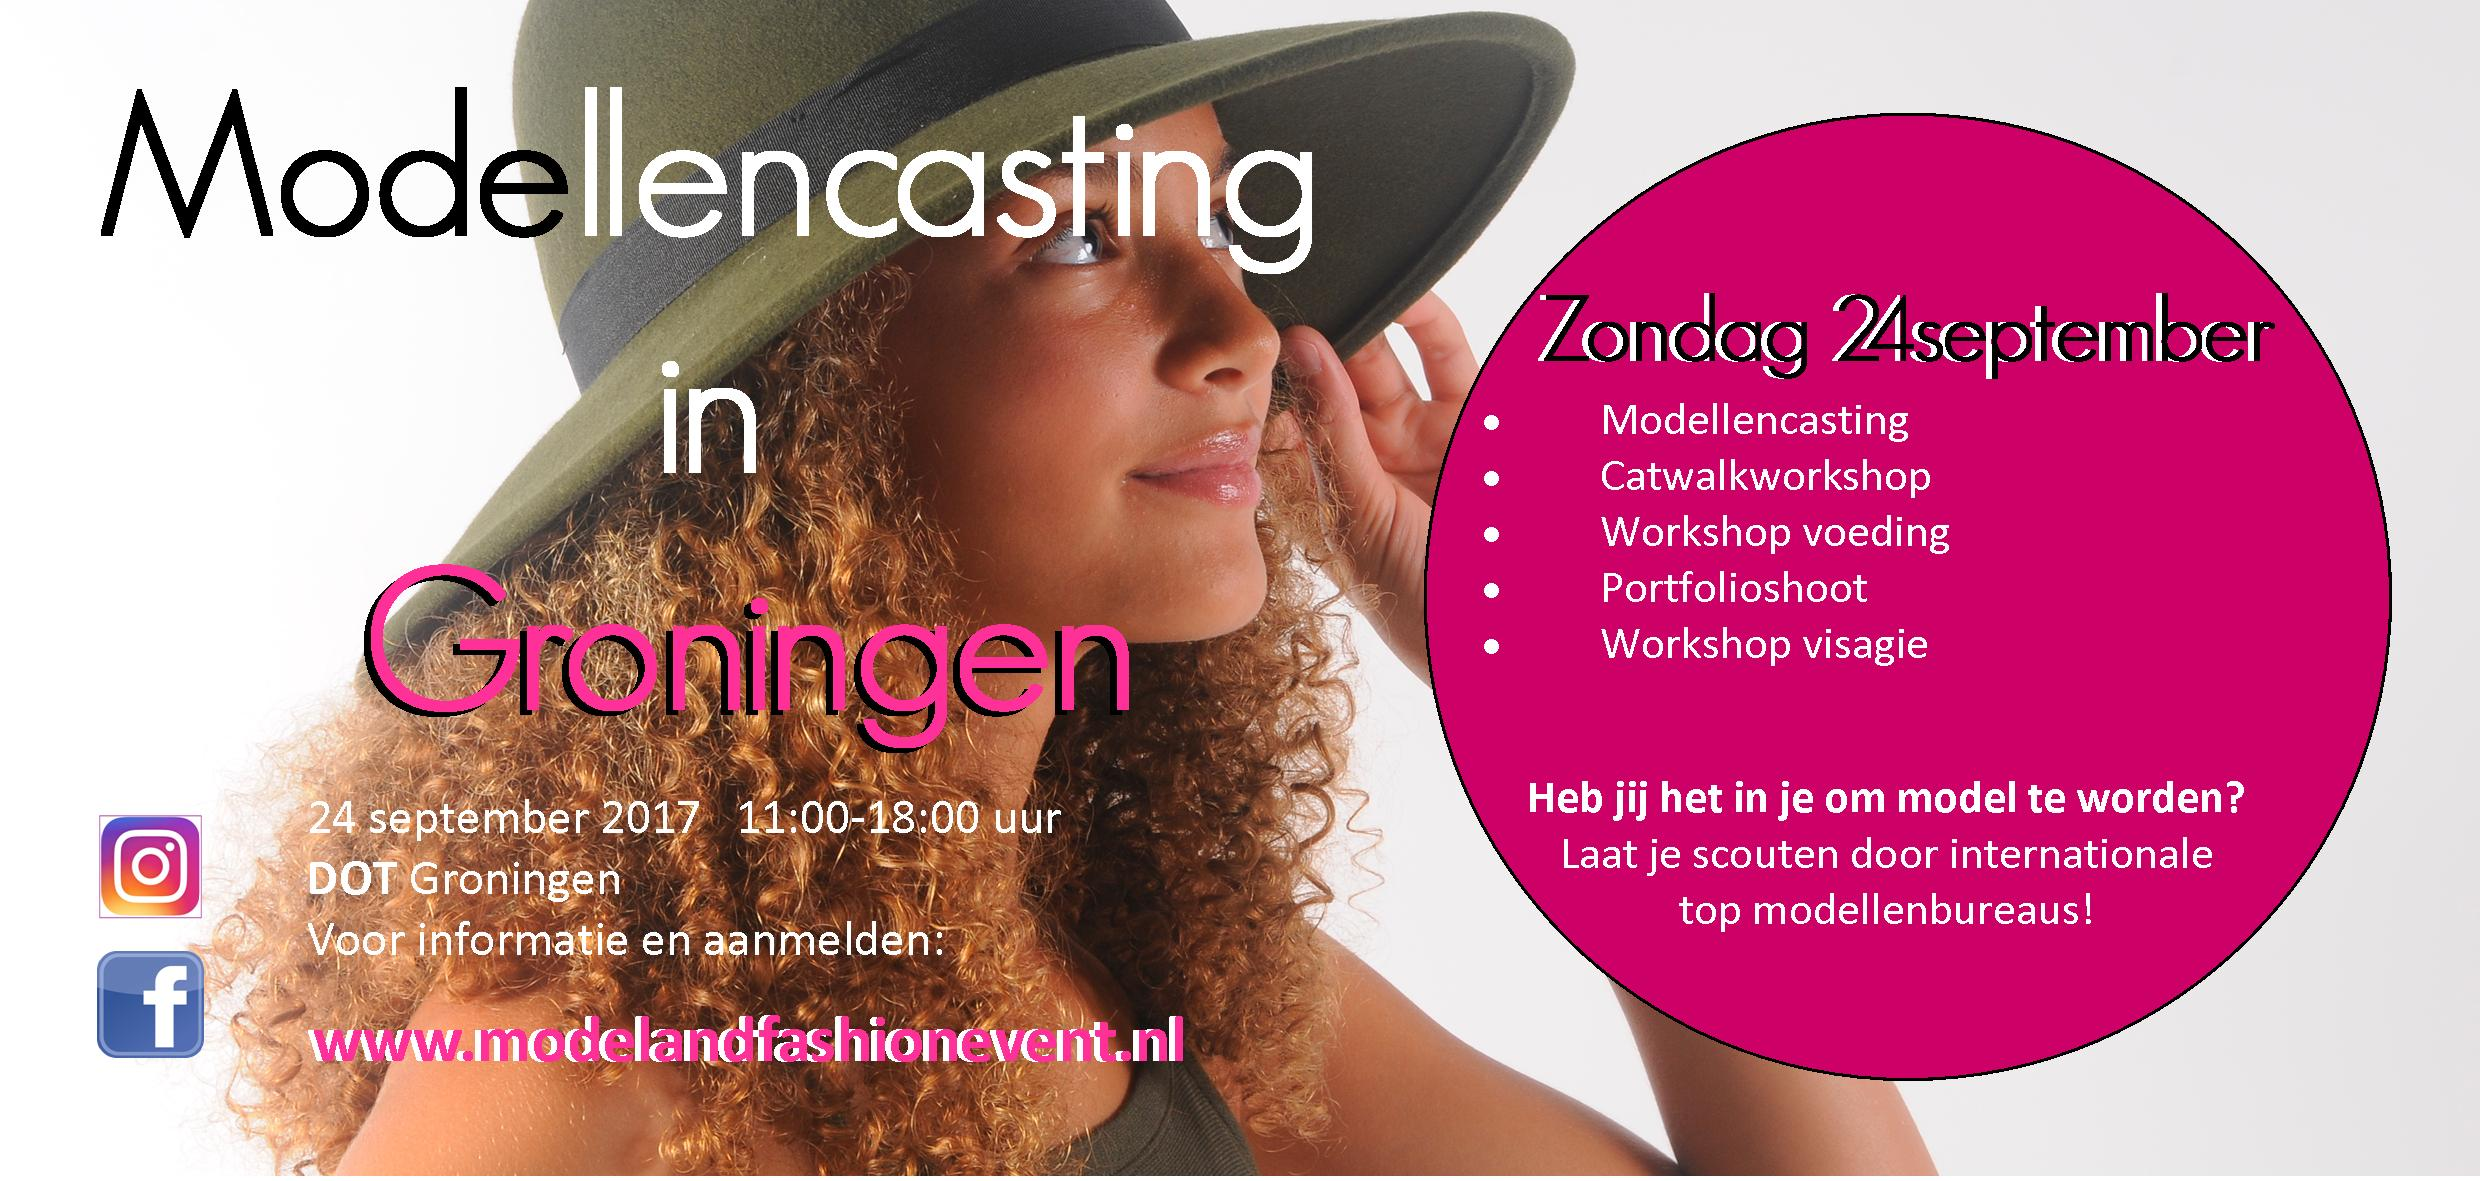 Model & Fashion Event Groningen